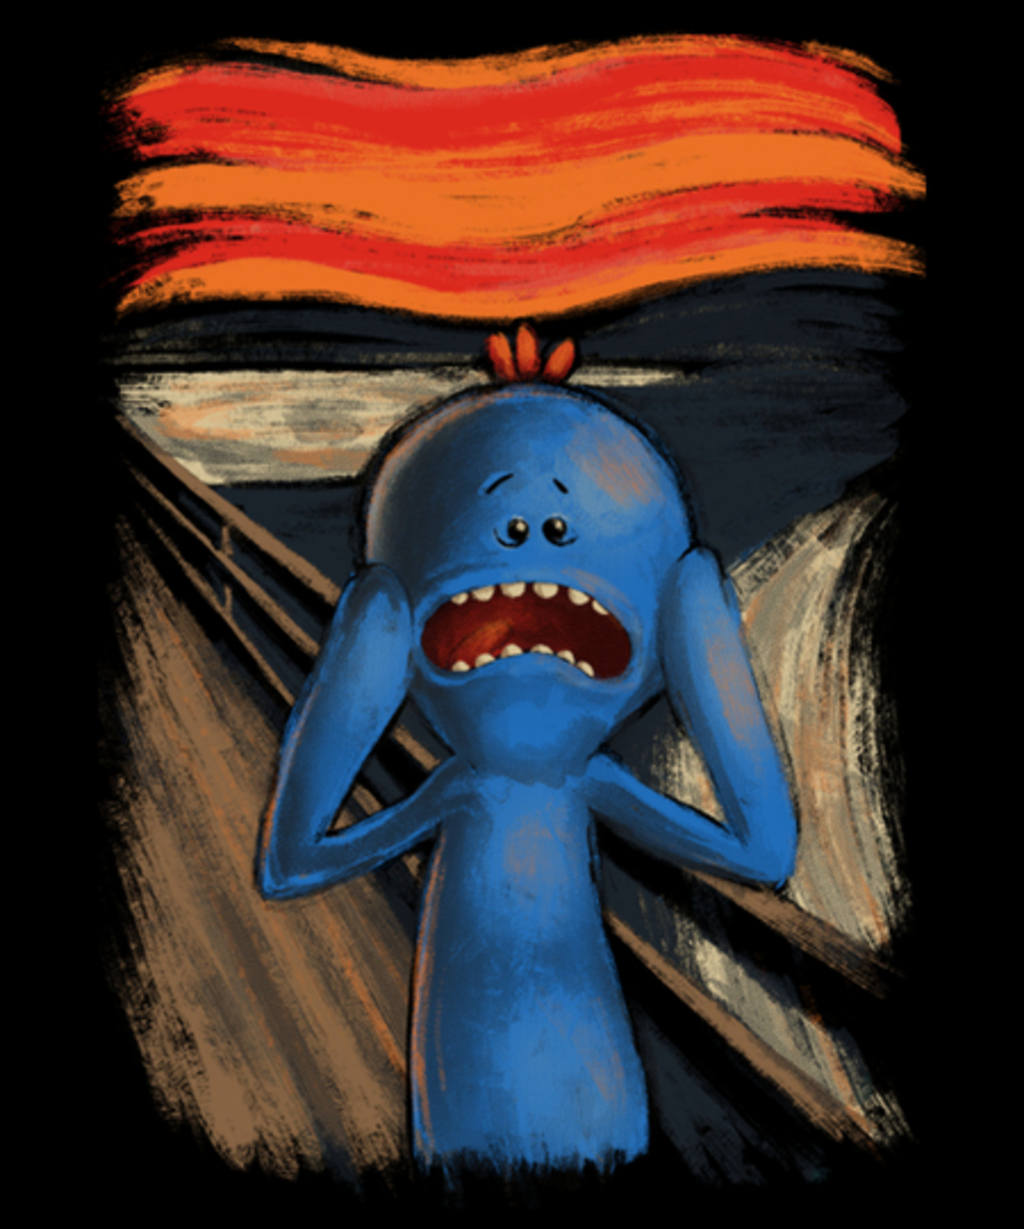 Qwertee: Scream of pain